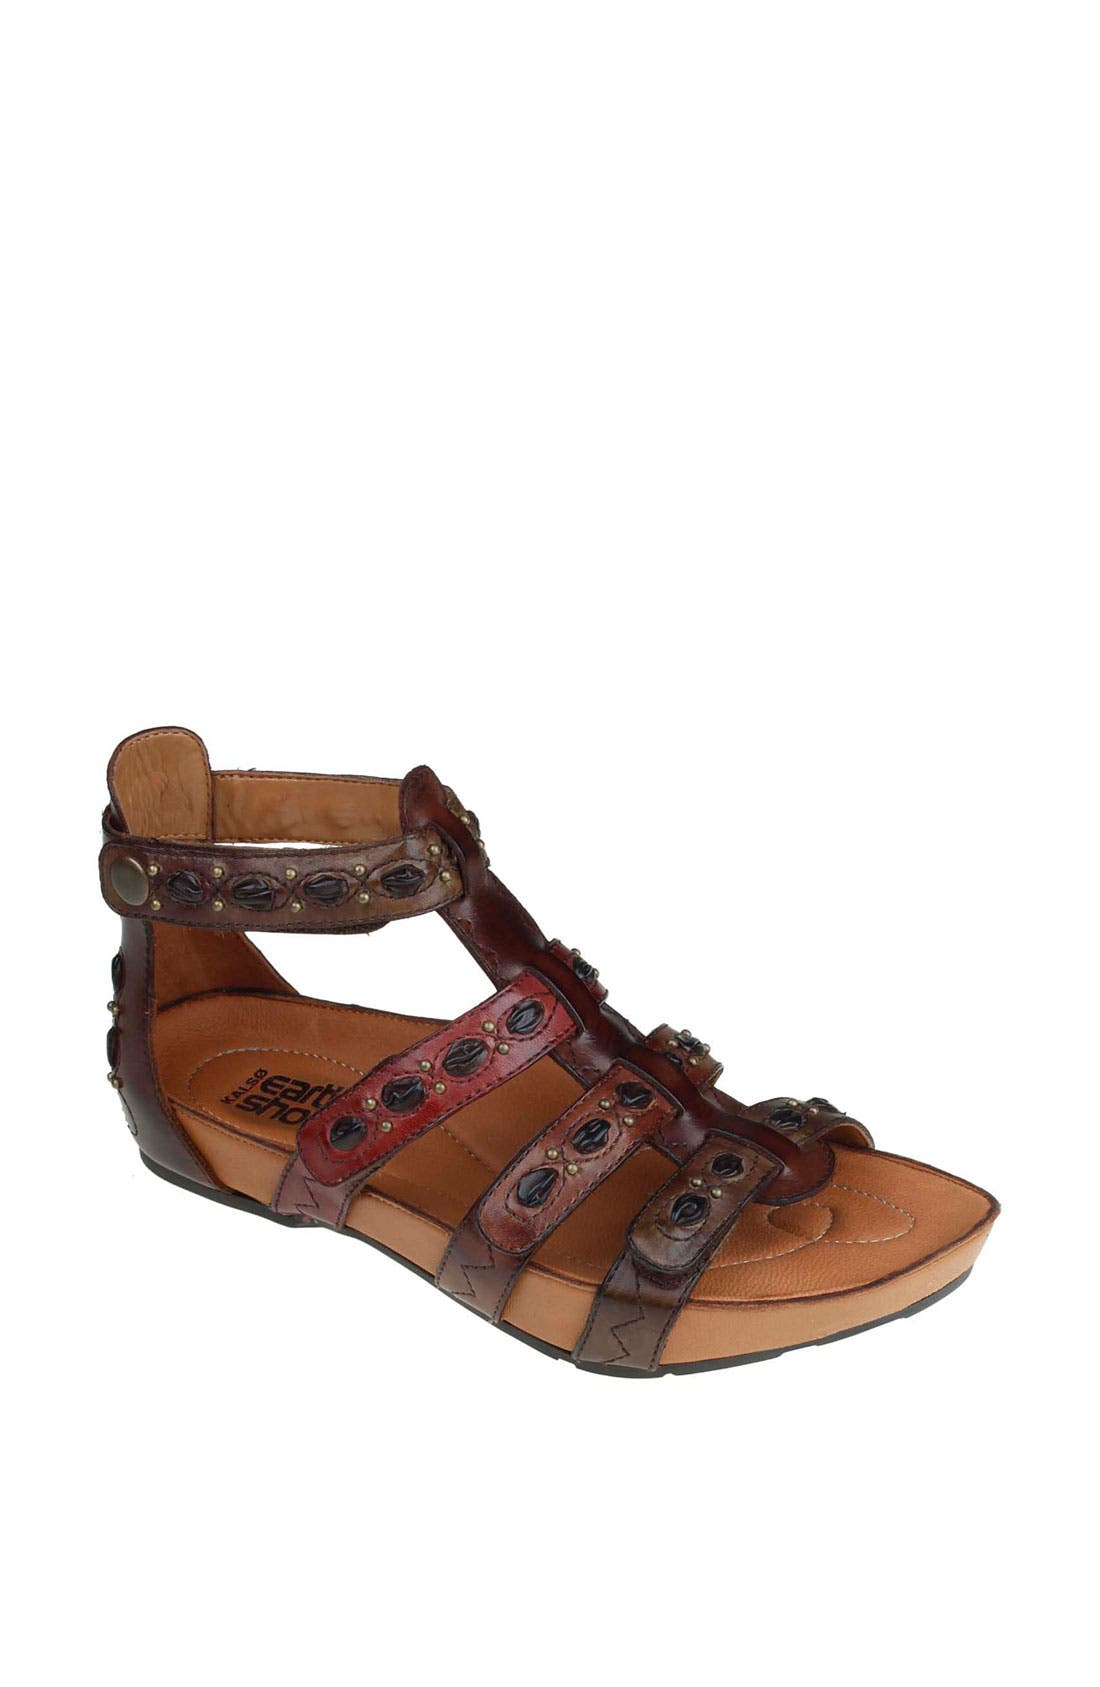 Main Image - Kalso Earth® 'Empire' Sandal